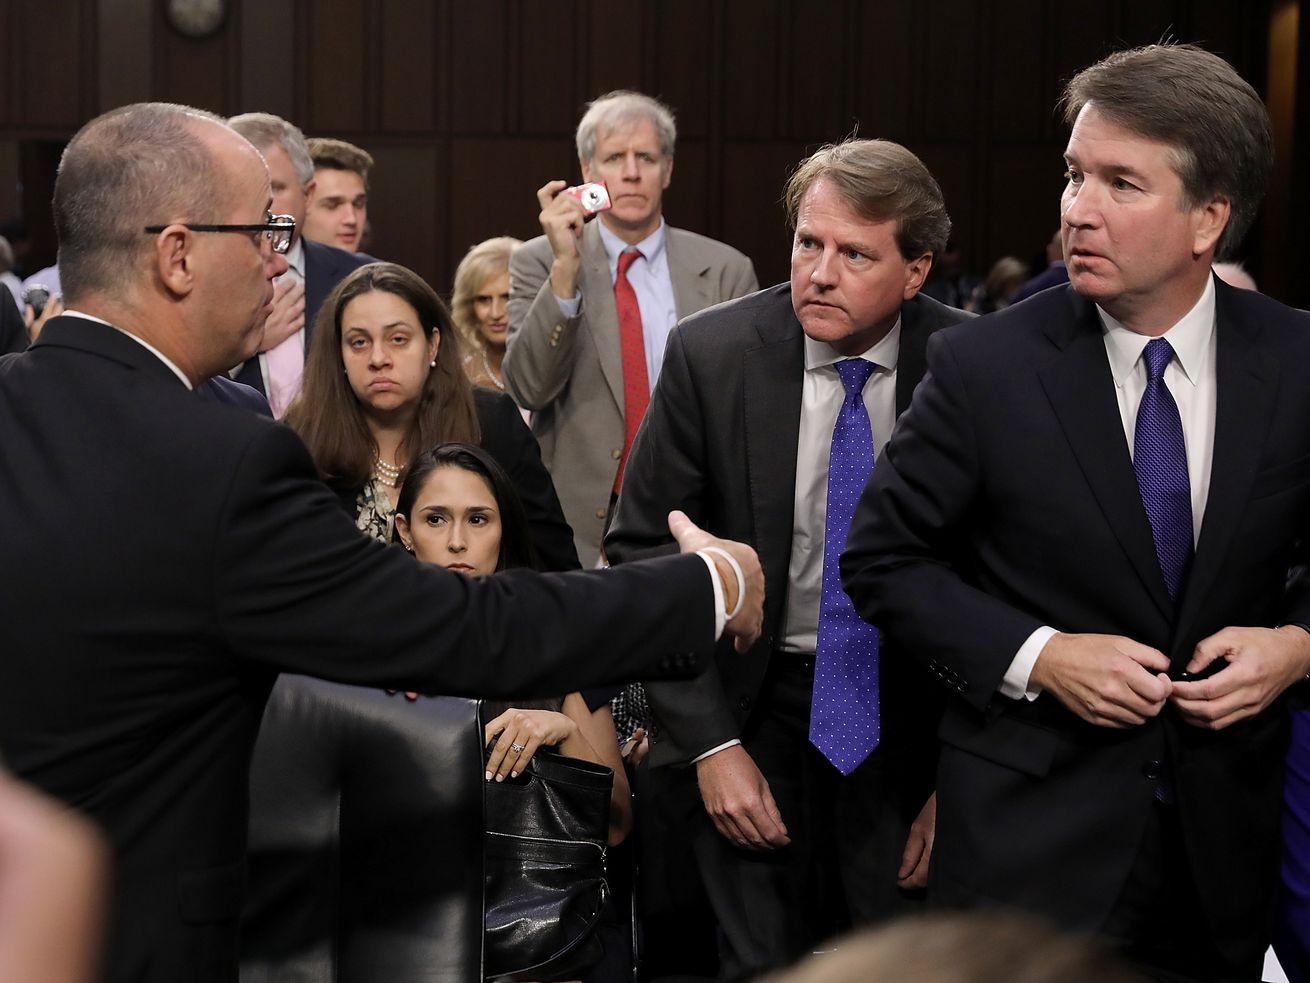 Fred Guttenberg (L), father of Parkland high school shooting victim Jamie Guttenberg, tries to shake the hand of Supreme Court nominee Judge Brett Kavanaugh as Kavanaugh appeared before the Senate Judiciary Committee during his Supreme Court confirmation hearing on Capitol Hill September 4, 2018 in Washington, DC.